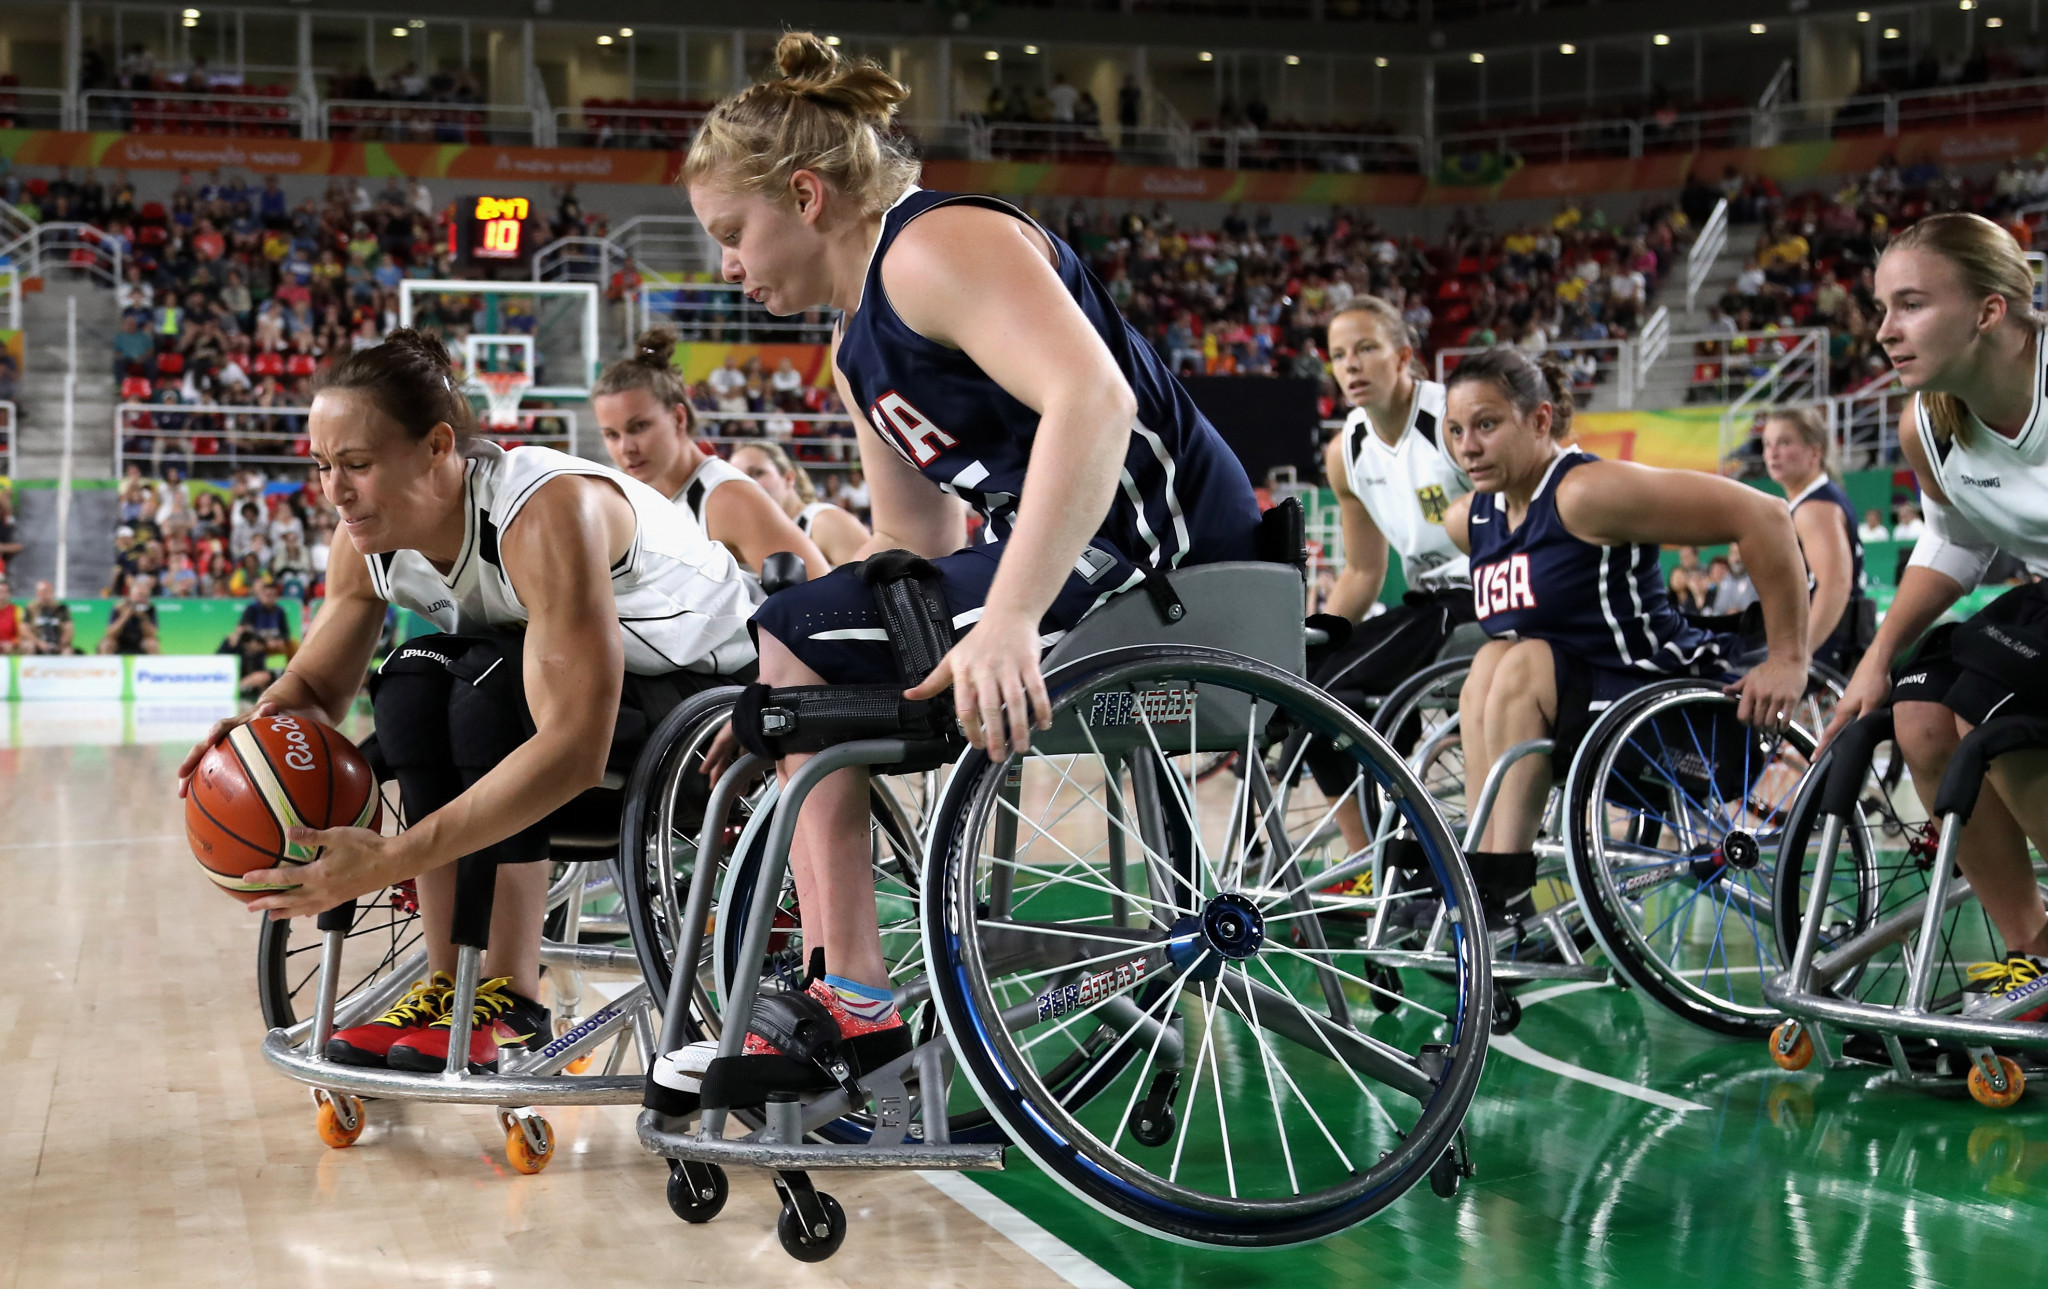 United States announce women's team for Wheelchair Basketball World Championships